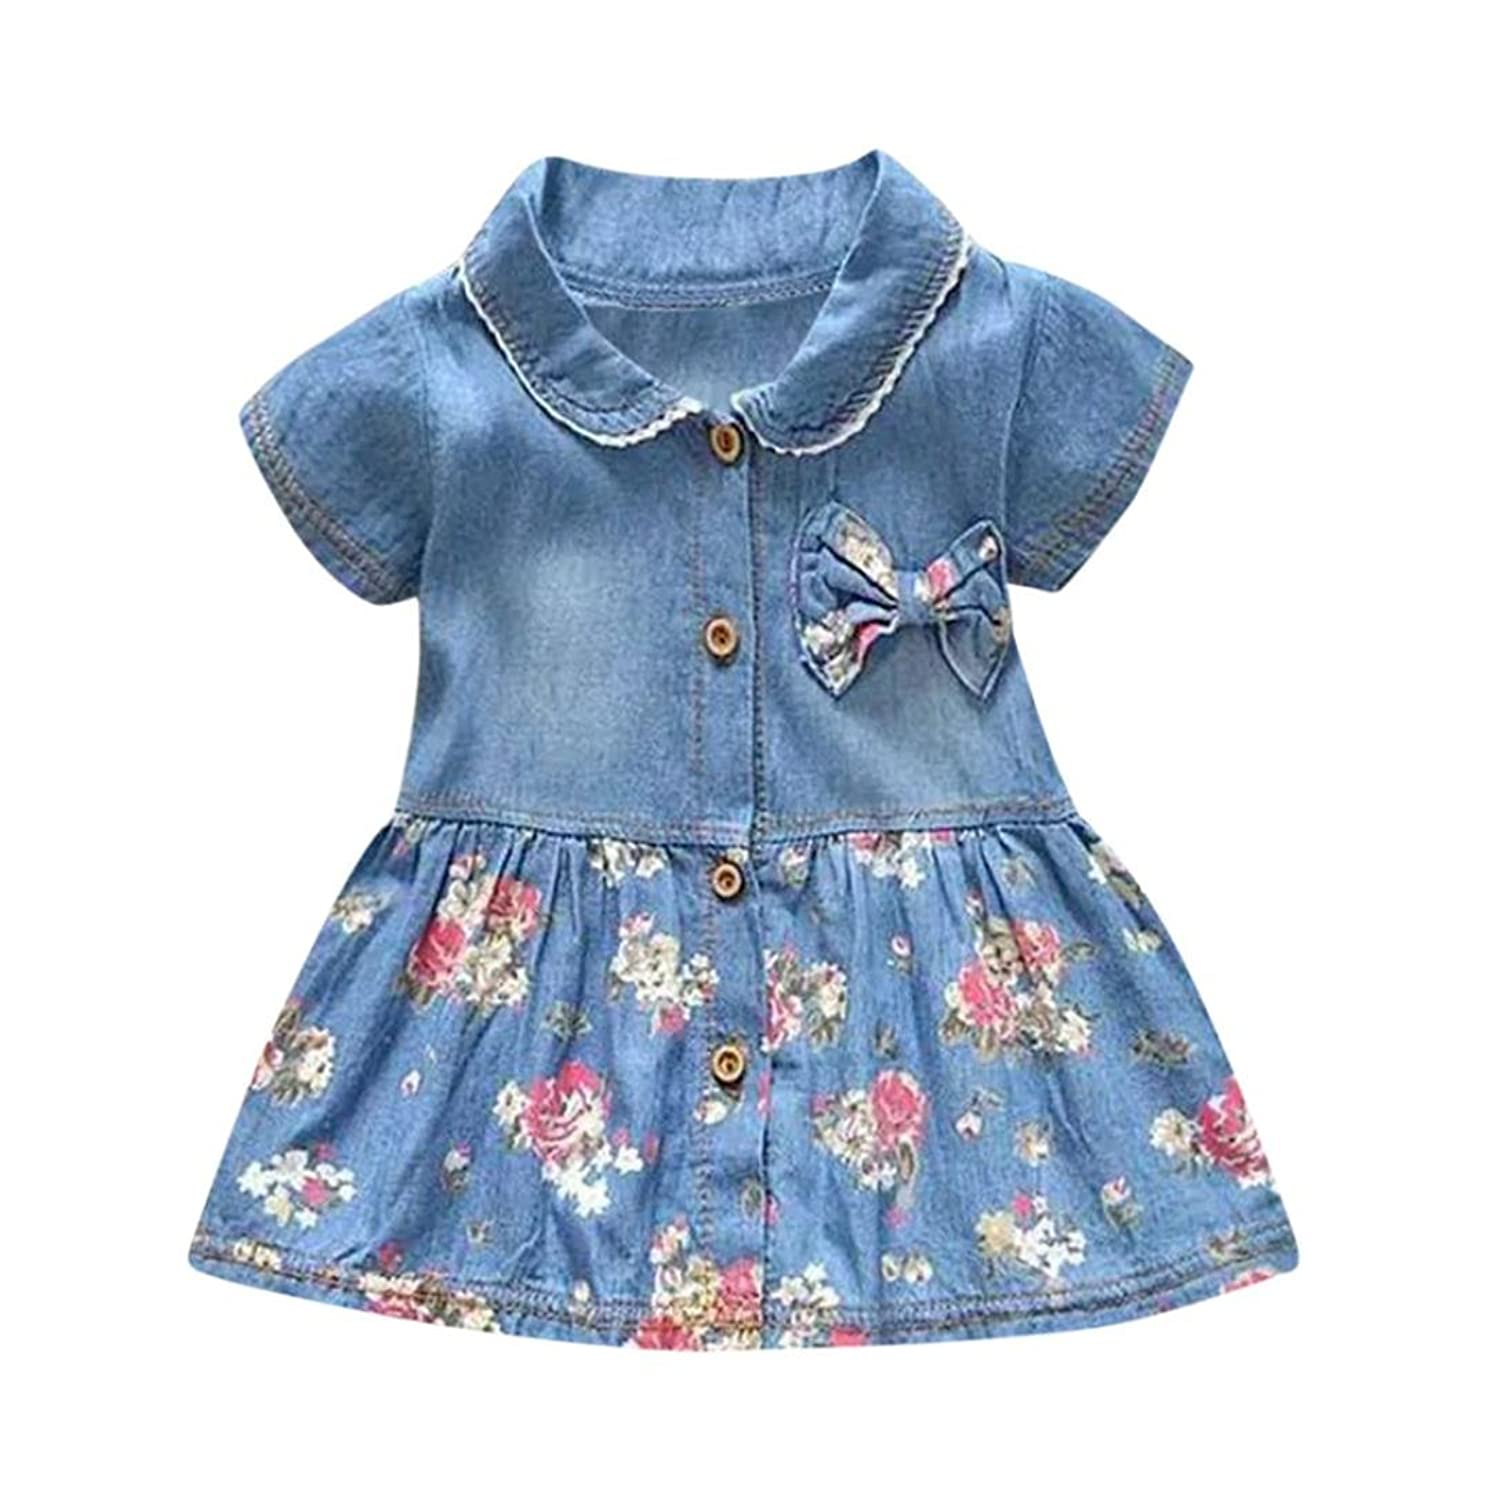 7aef93d8 Size Chart For Baby (Unit:cm/inch/1 inch = 2.54 cm) Size:6M Label Size:S  Bust:56cm/22